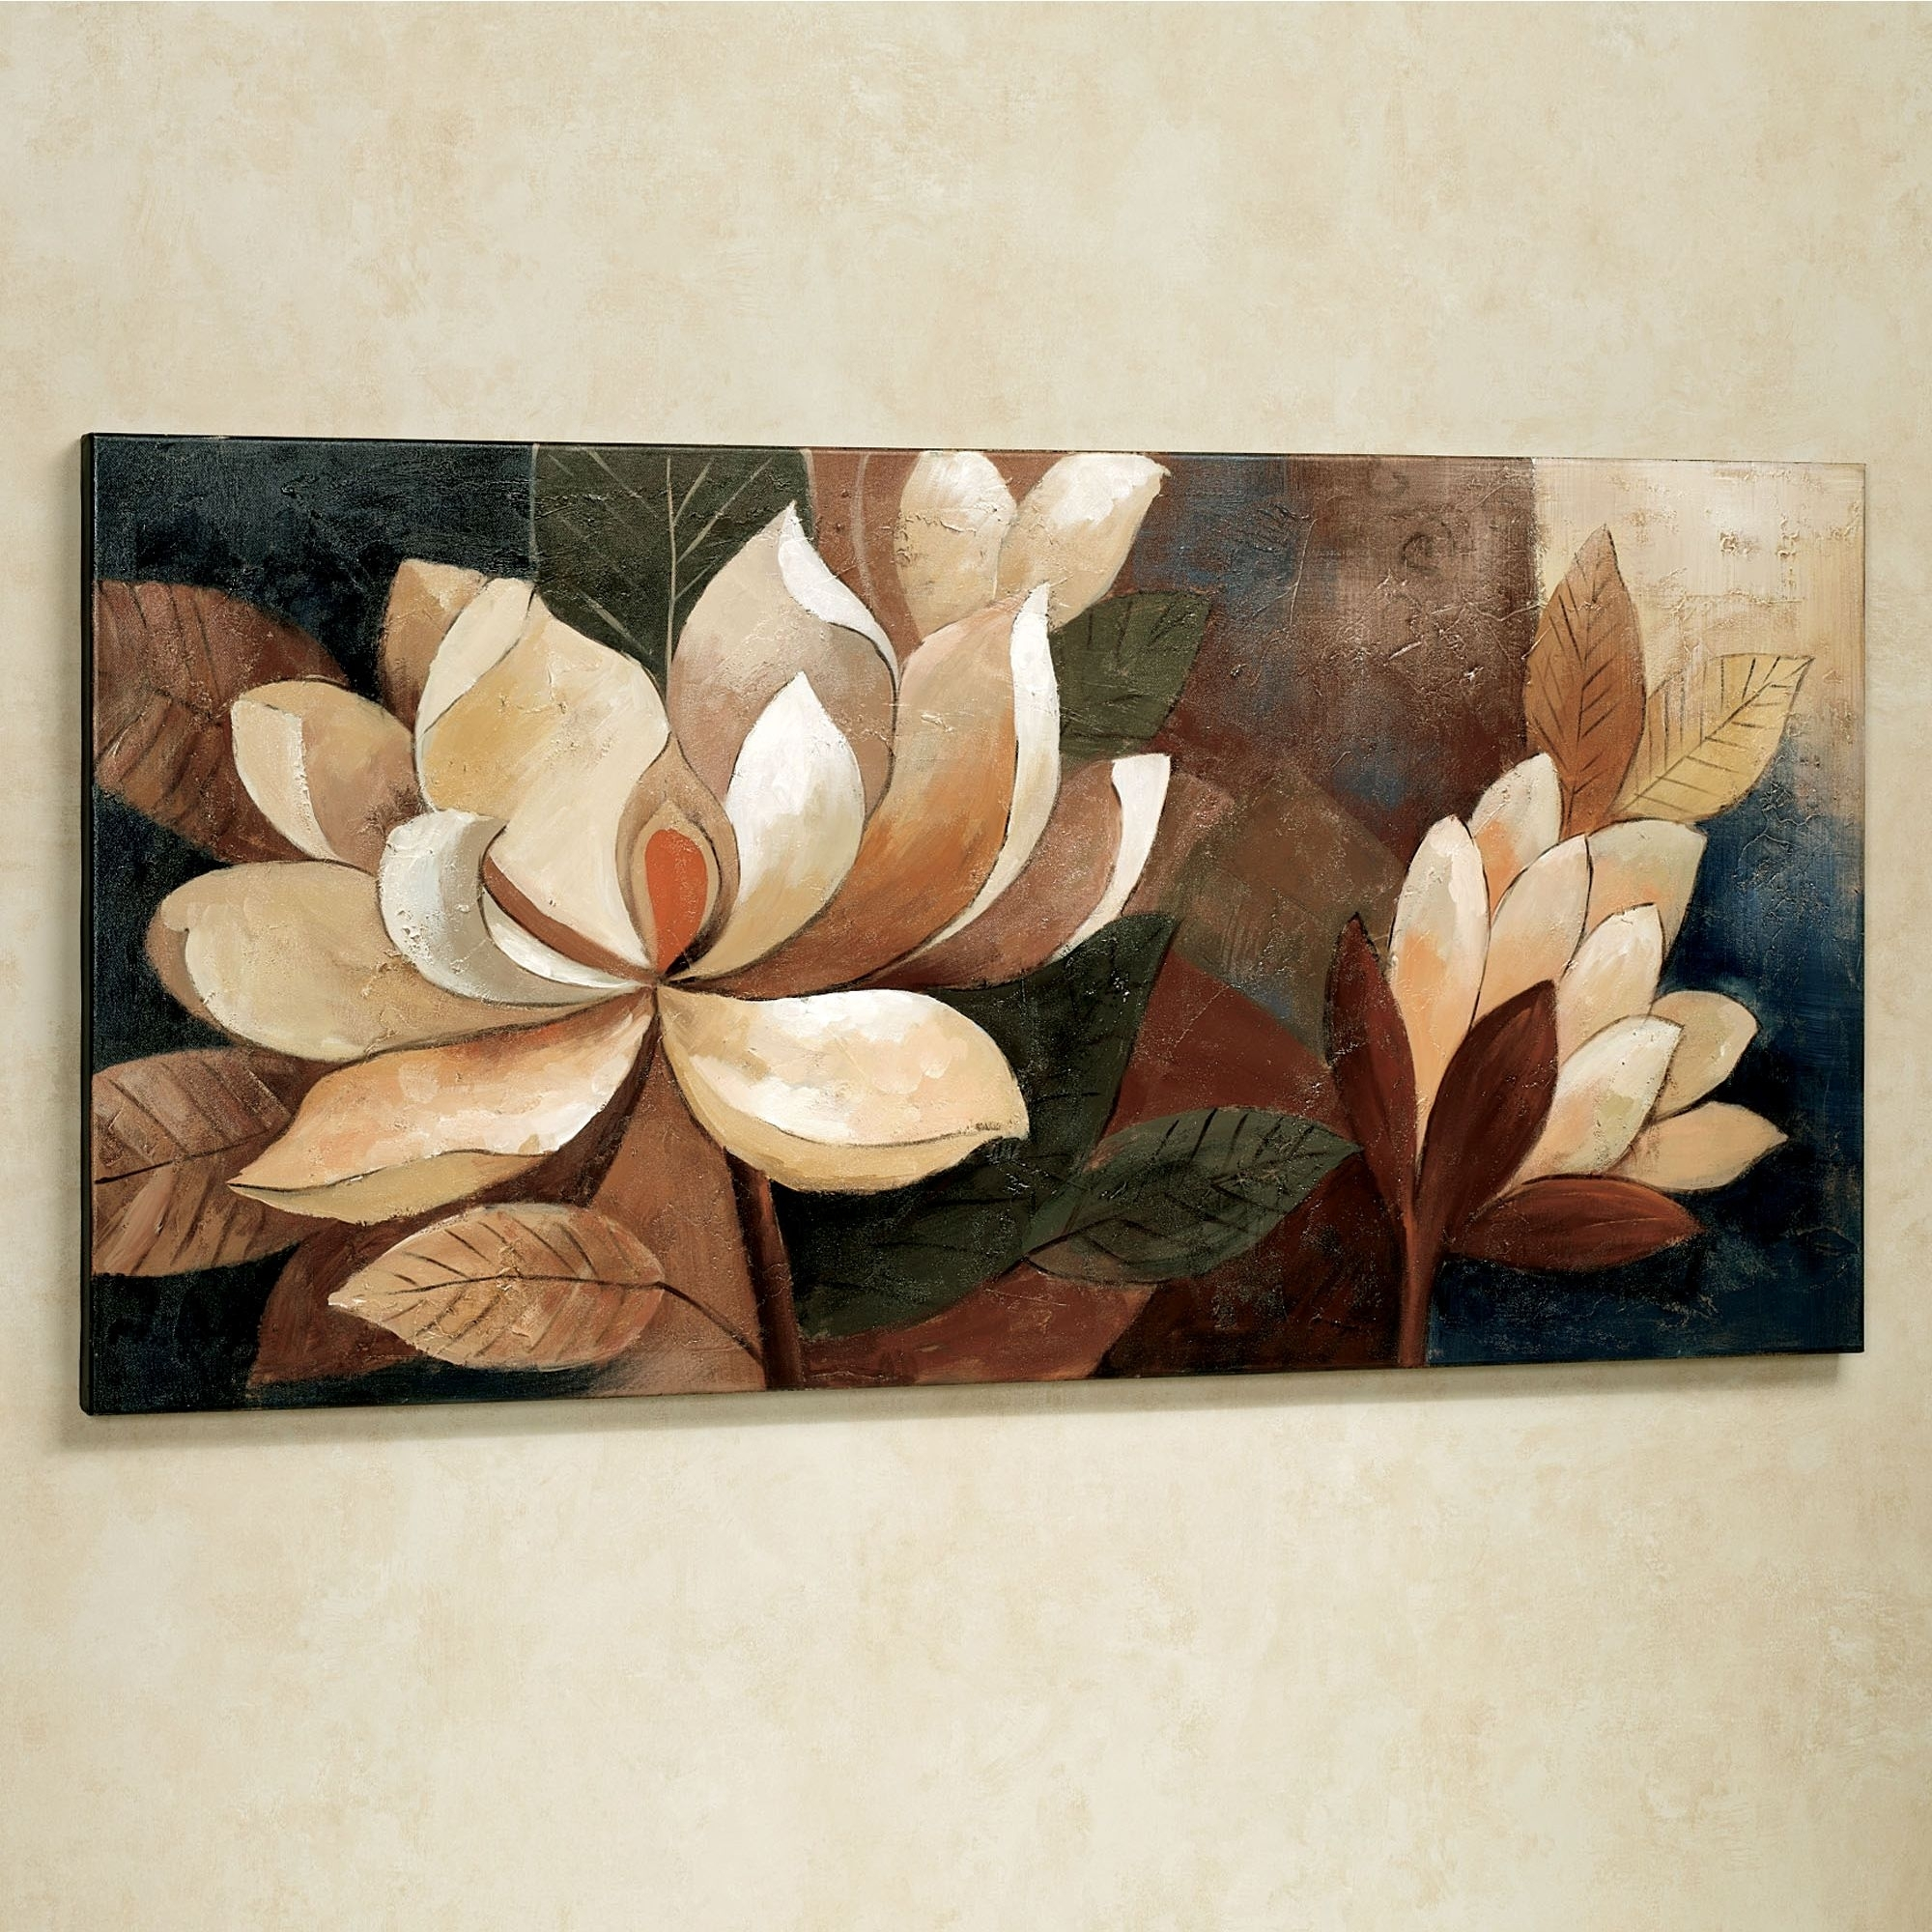 Wall Art Designs: Floral Canvas Wall Art Magnolia Wall Art Simple With Regard To 2017 Kirkland Abstract Wall Art (View 12 of 20)